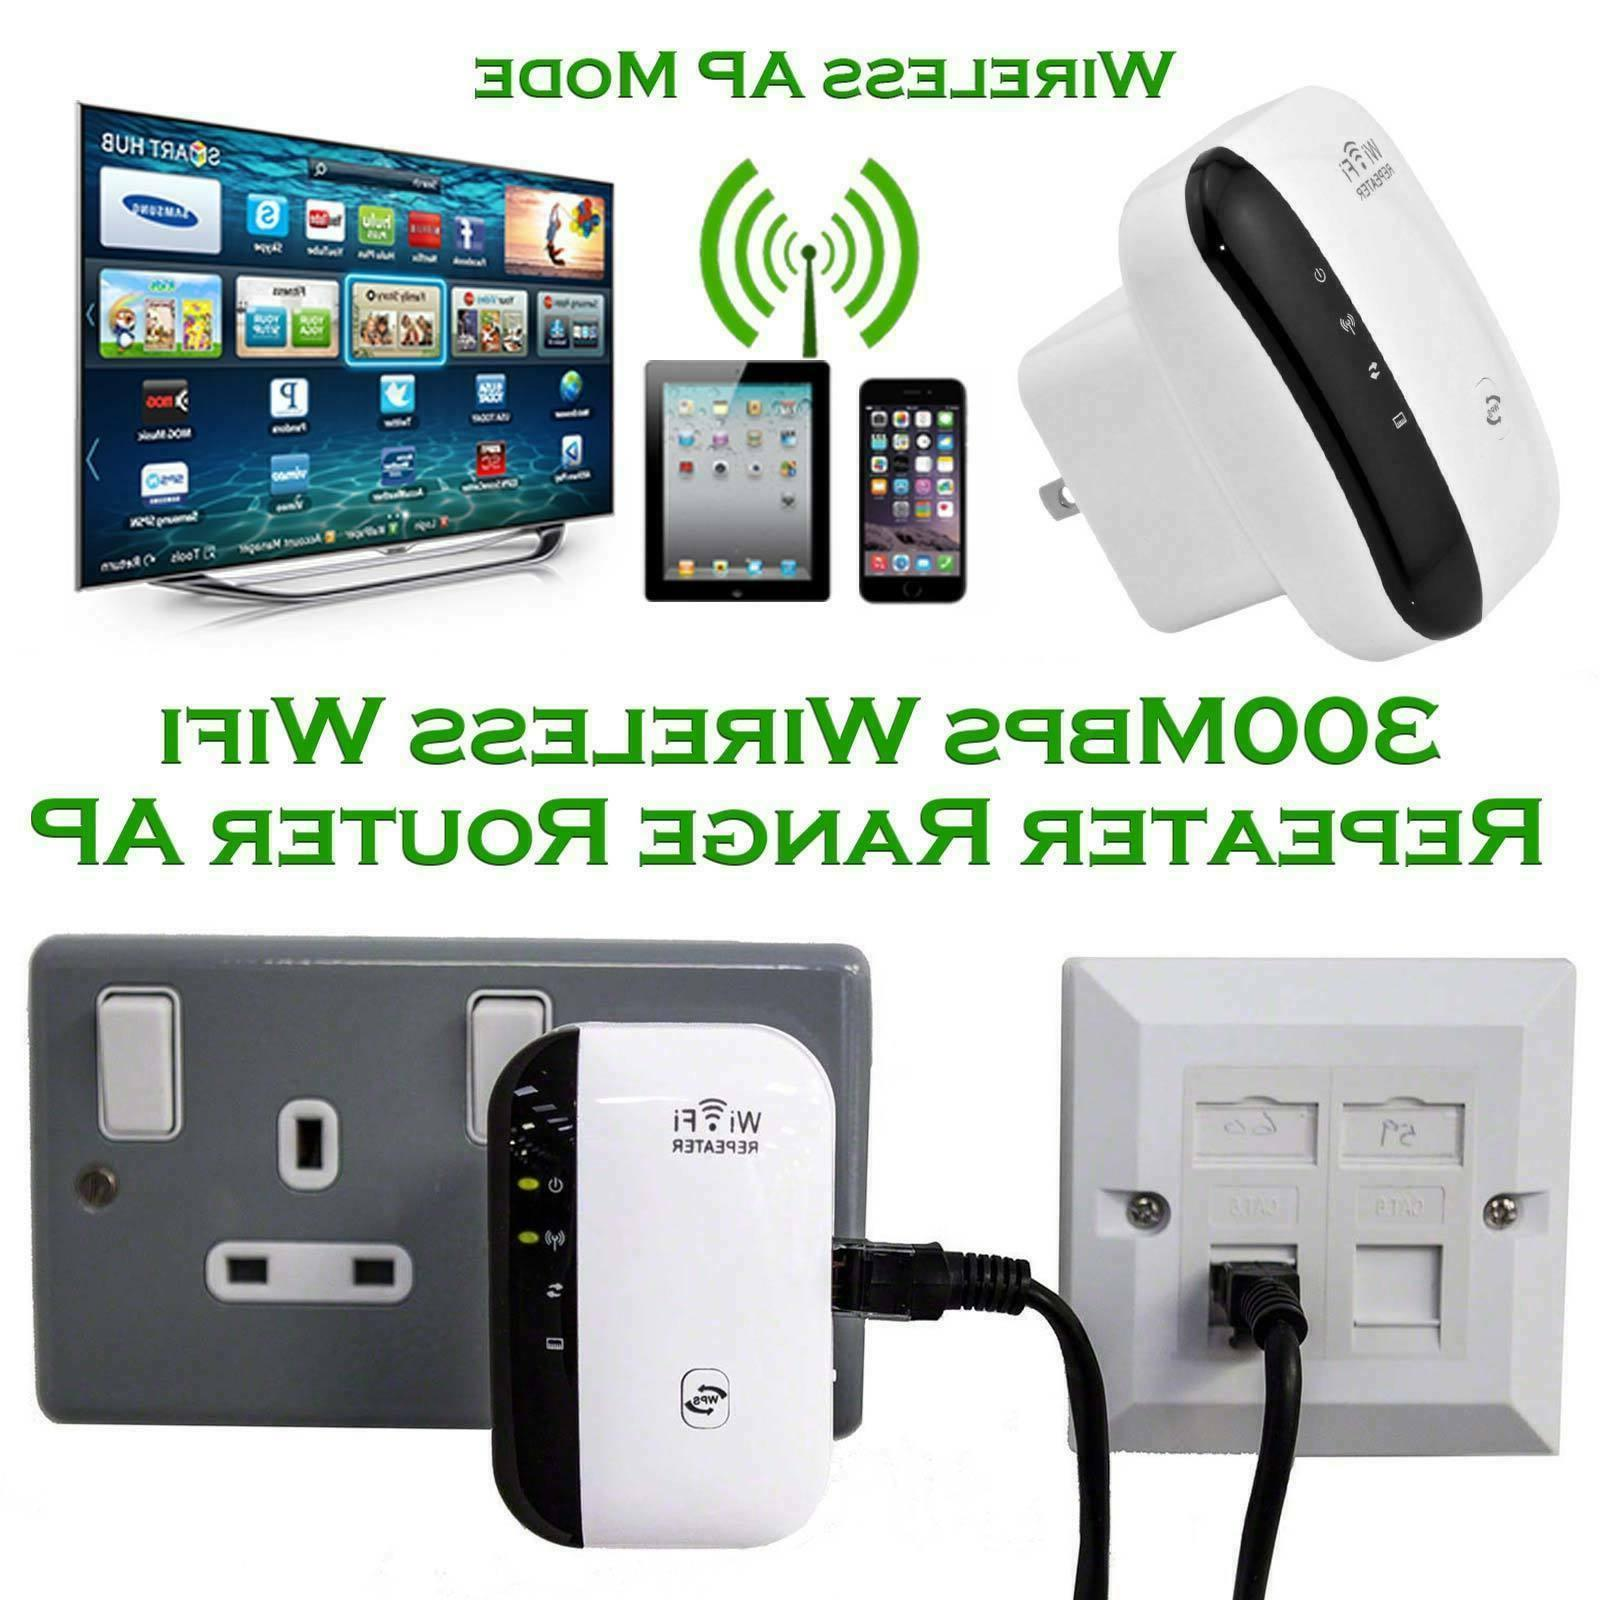 300Mbps 802.11 Network Signal Extender Booster